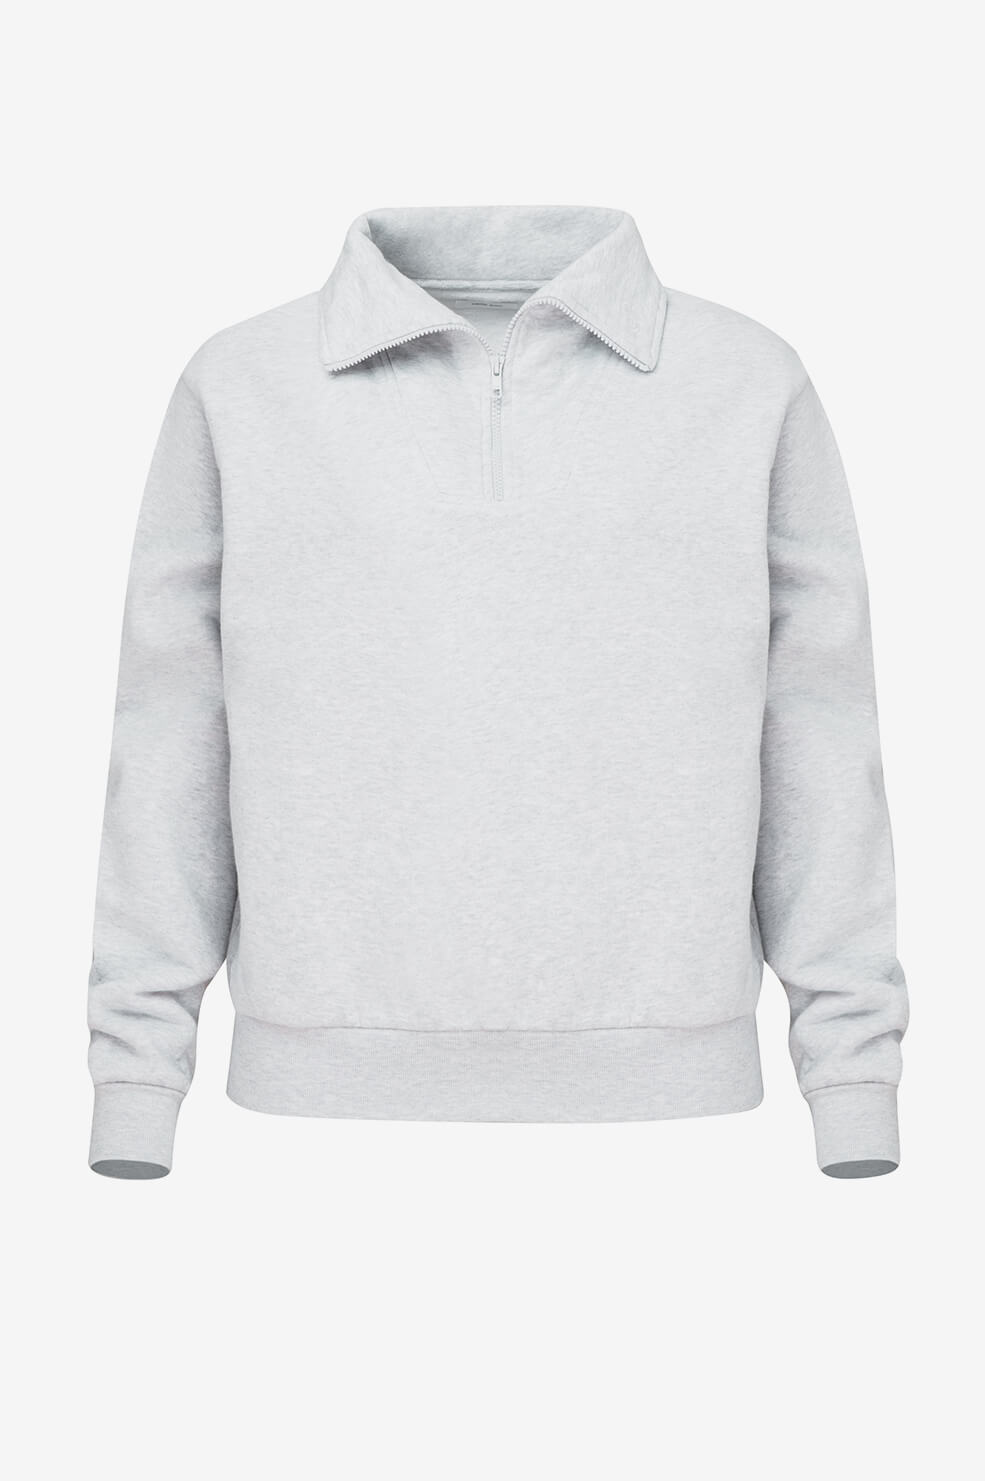 ANINE BING Jalen Sweatshirt - Heather Grey